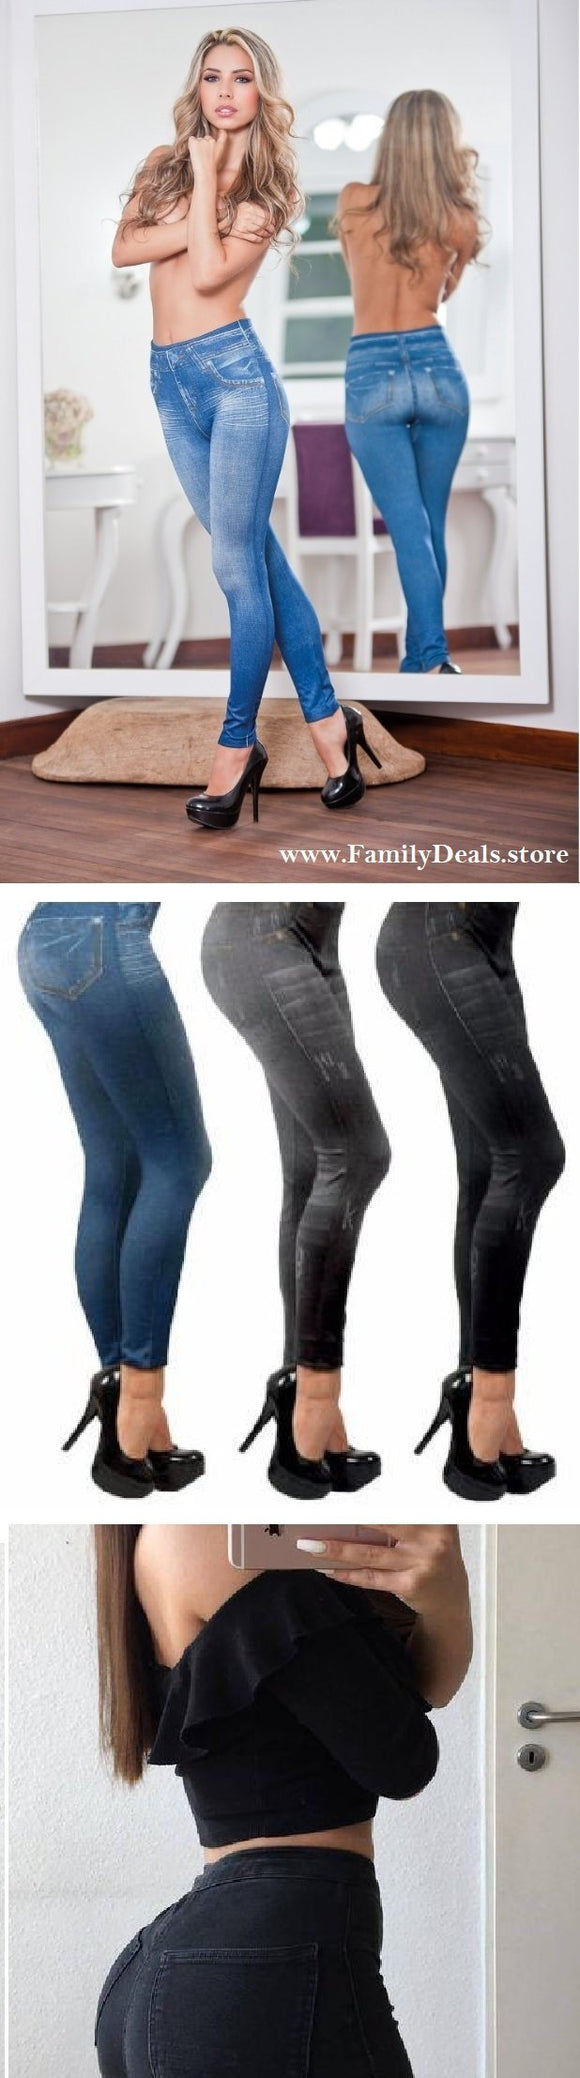 Family Deals clothing Blue, Back, Gray Denim Push Up Leggings for Women. Tight, Trendy, Stylish High Waisted Leggings